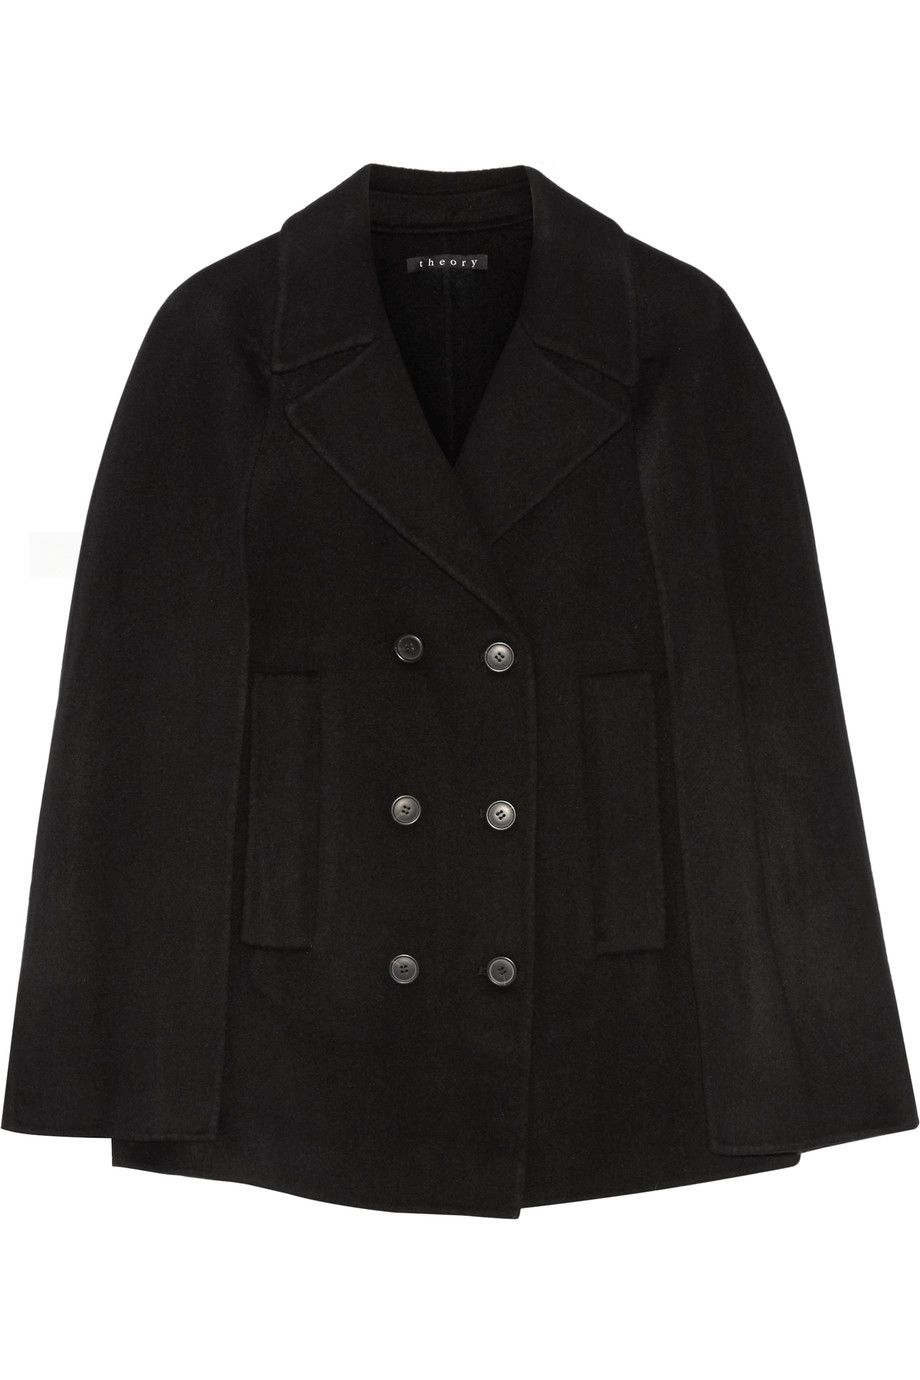 d9e712212e Shop on-sale Theory Kapalin wool and cashmere-blend cape. Browse other  discount designer Jackets & more on The Most Fashionable Fashion Outlet,  THE OUTNET.